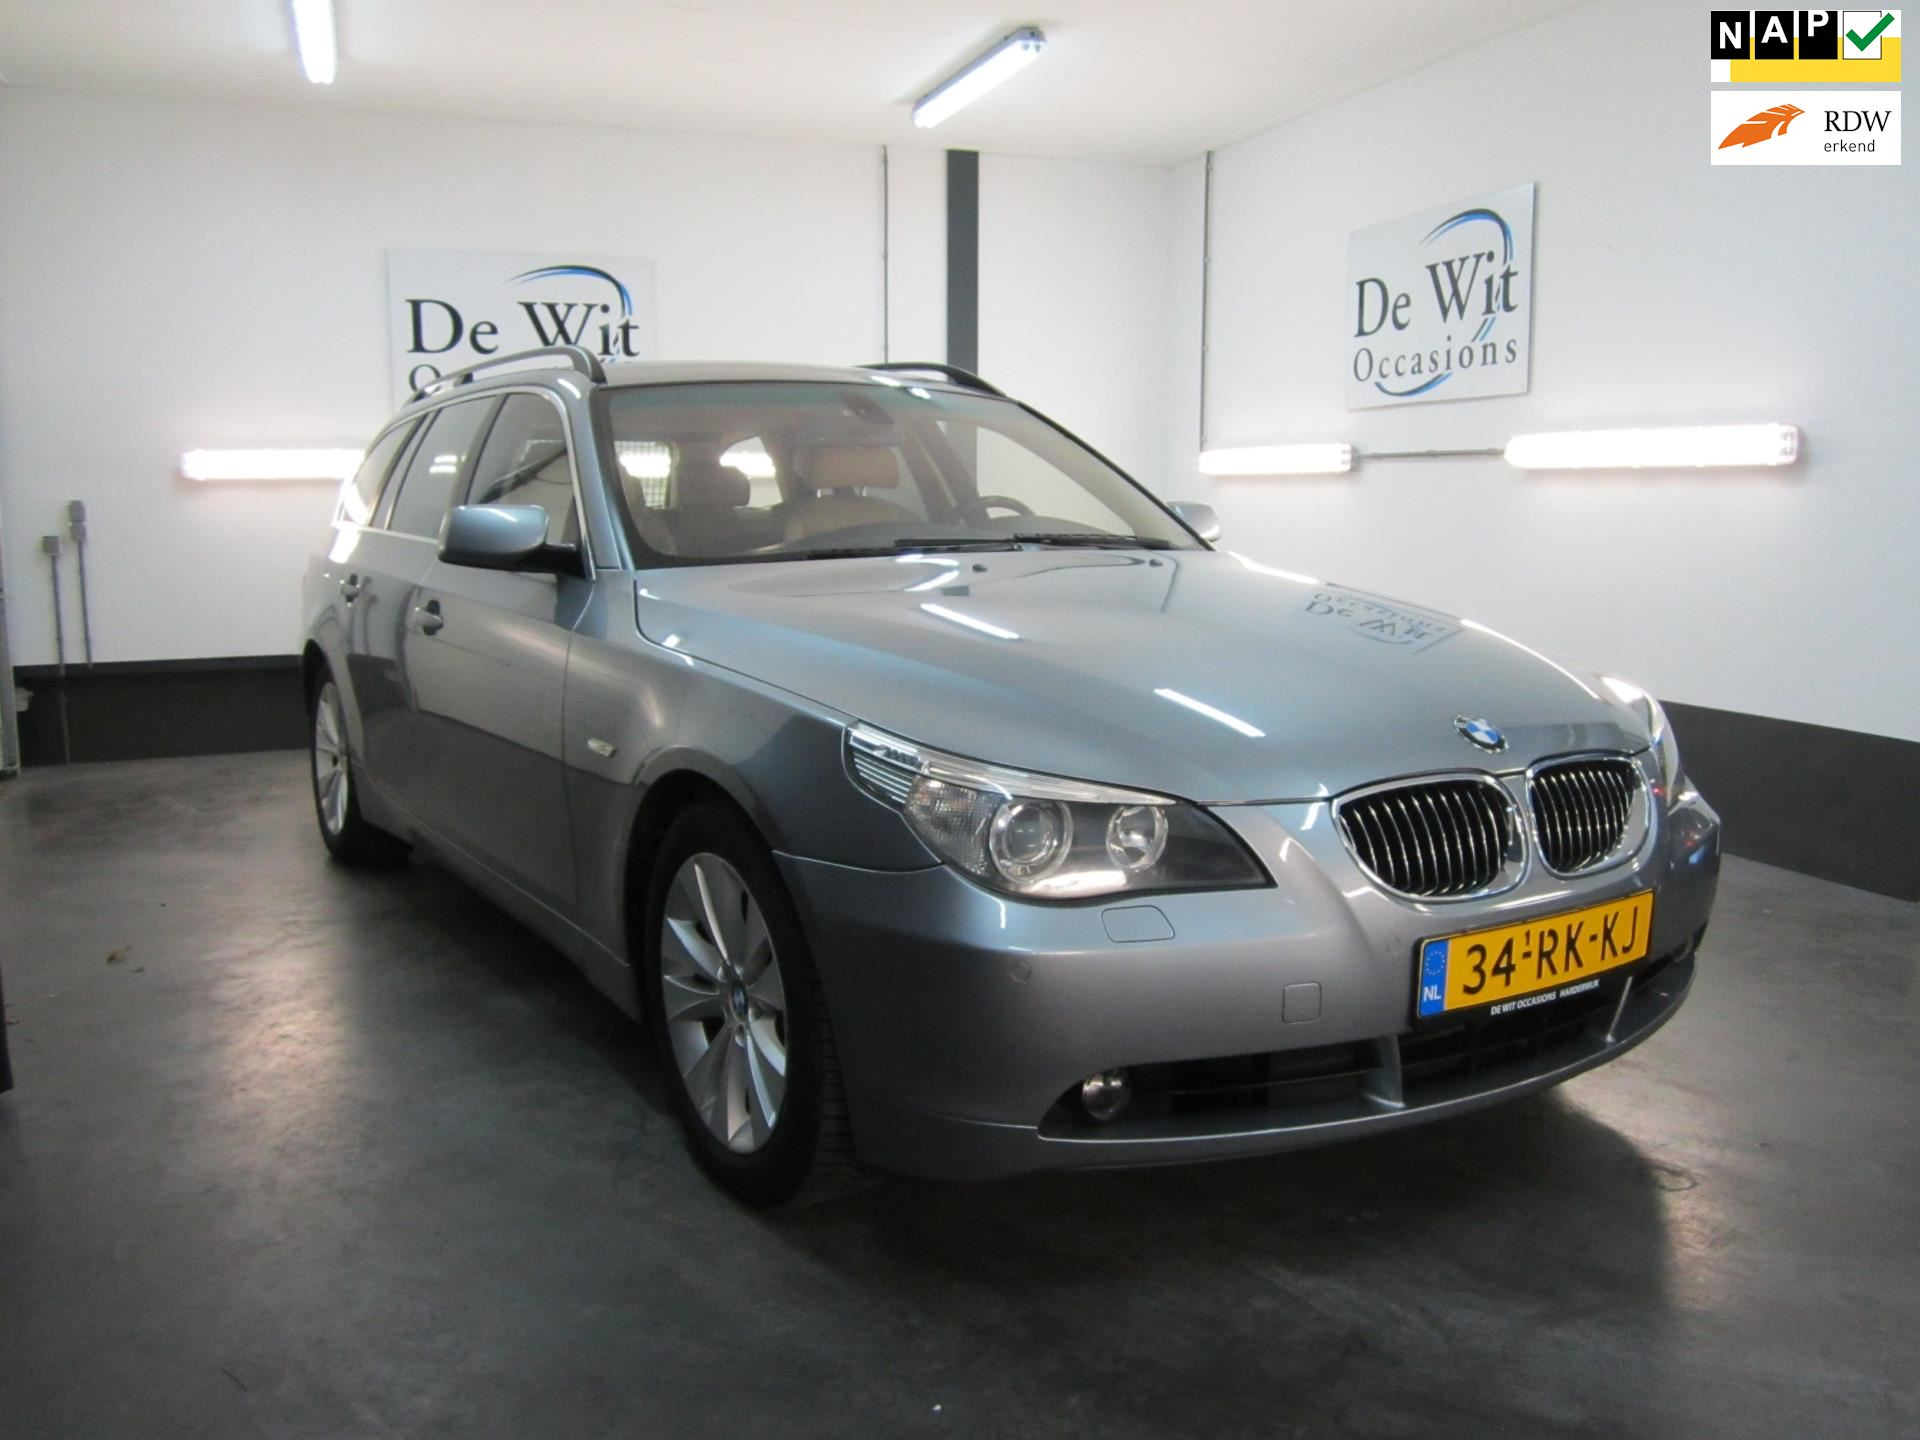 BMW 5-serie Touring occasion - De Wit Occasions